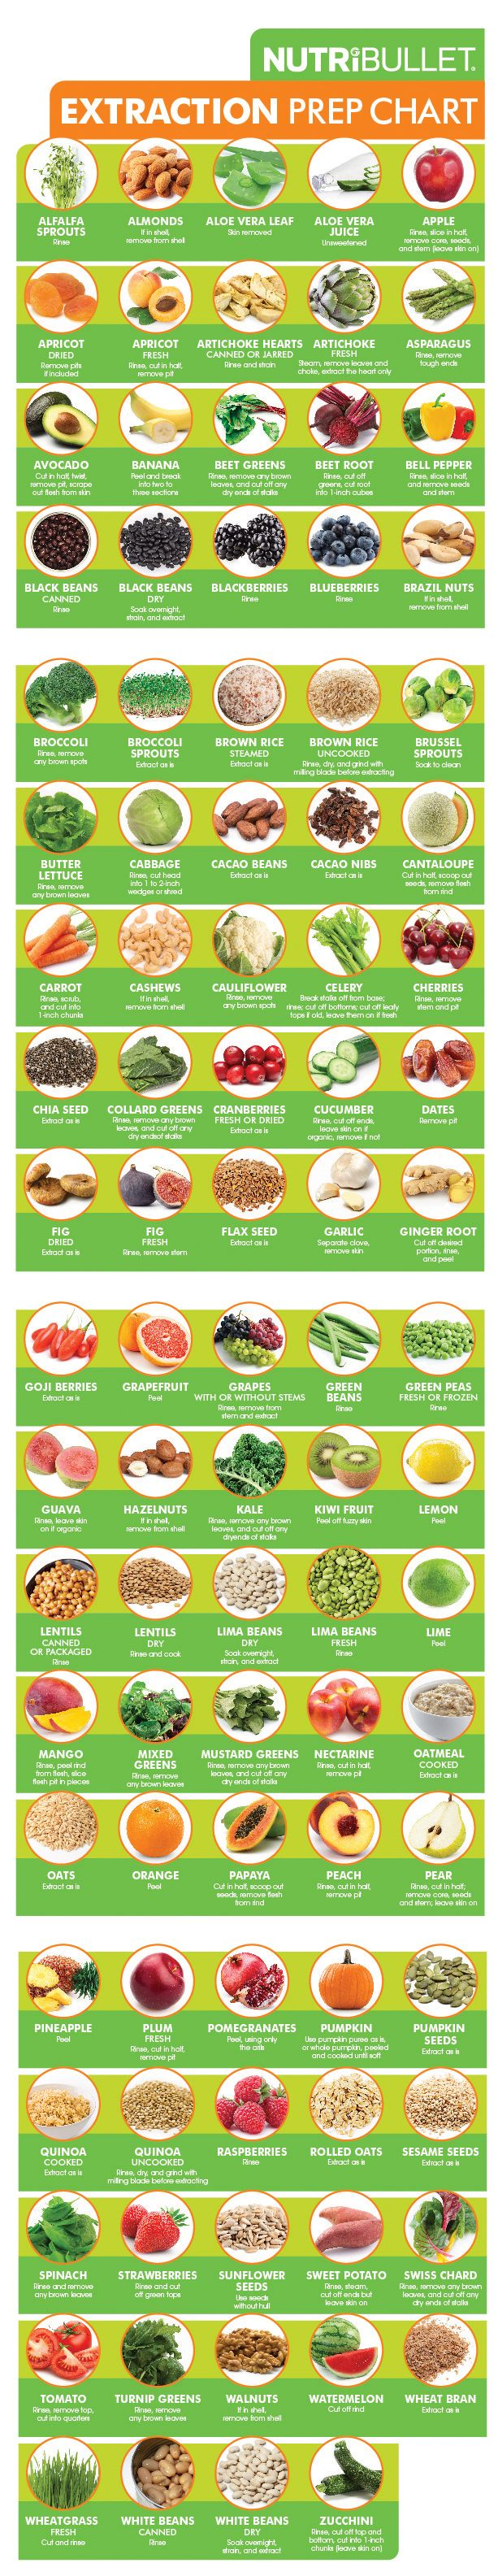 Wondering which fruits and/or vegetables you should peel or de-seed before putting them in your NutriBullet? Worry no more - this chart is here to help! With a long list of…